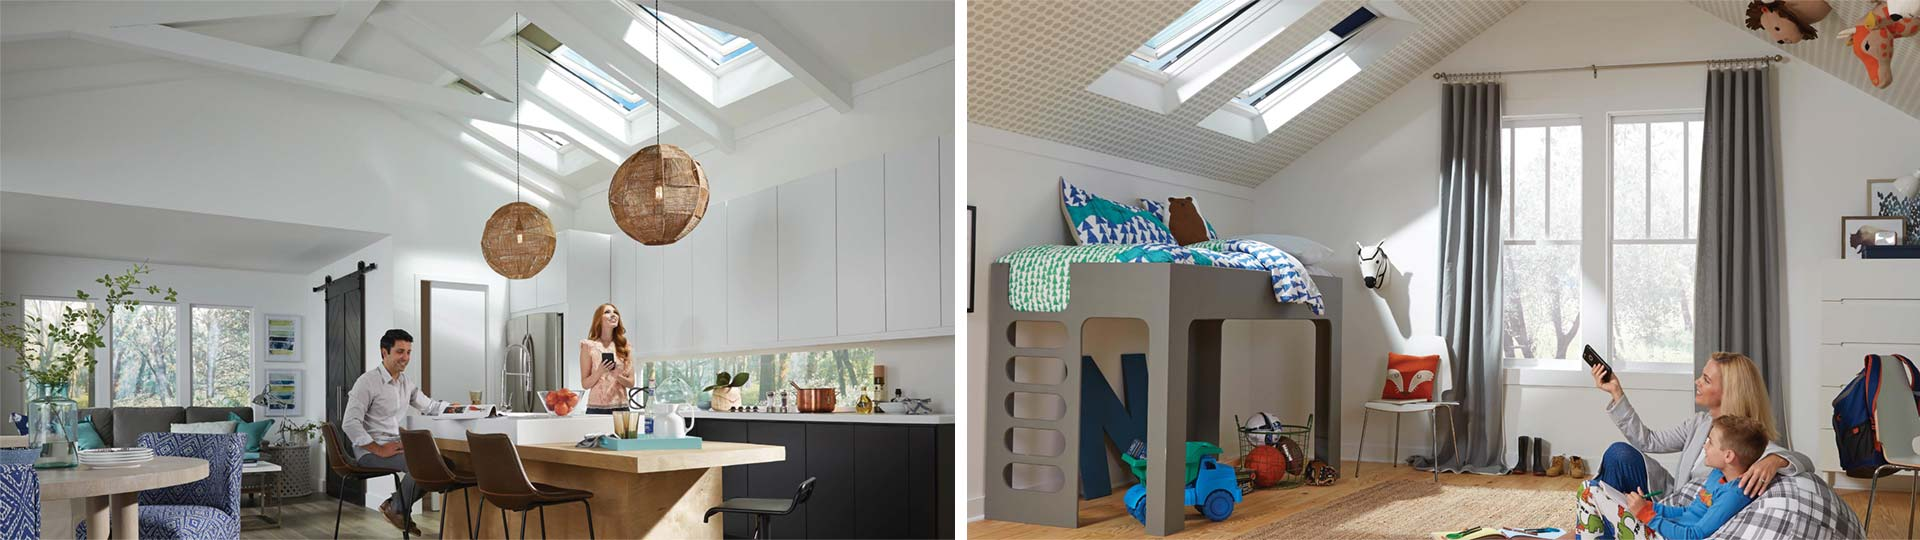 velux active skylights